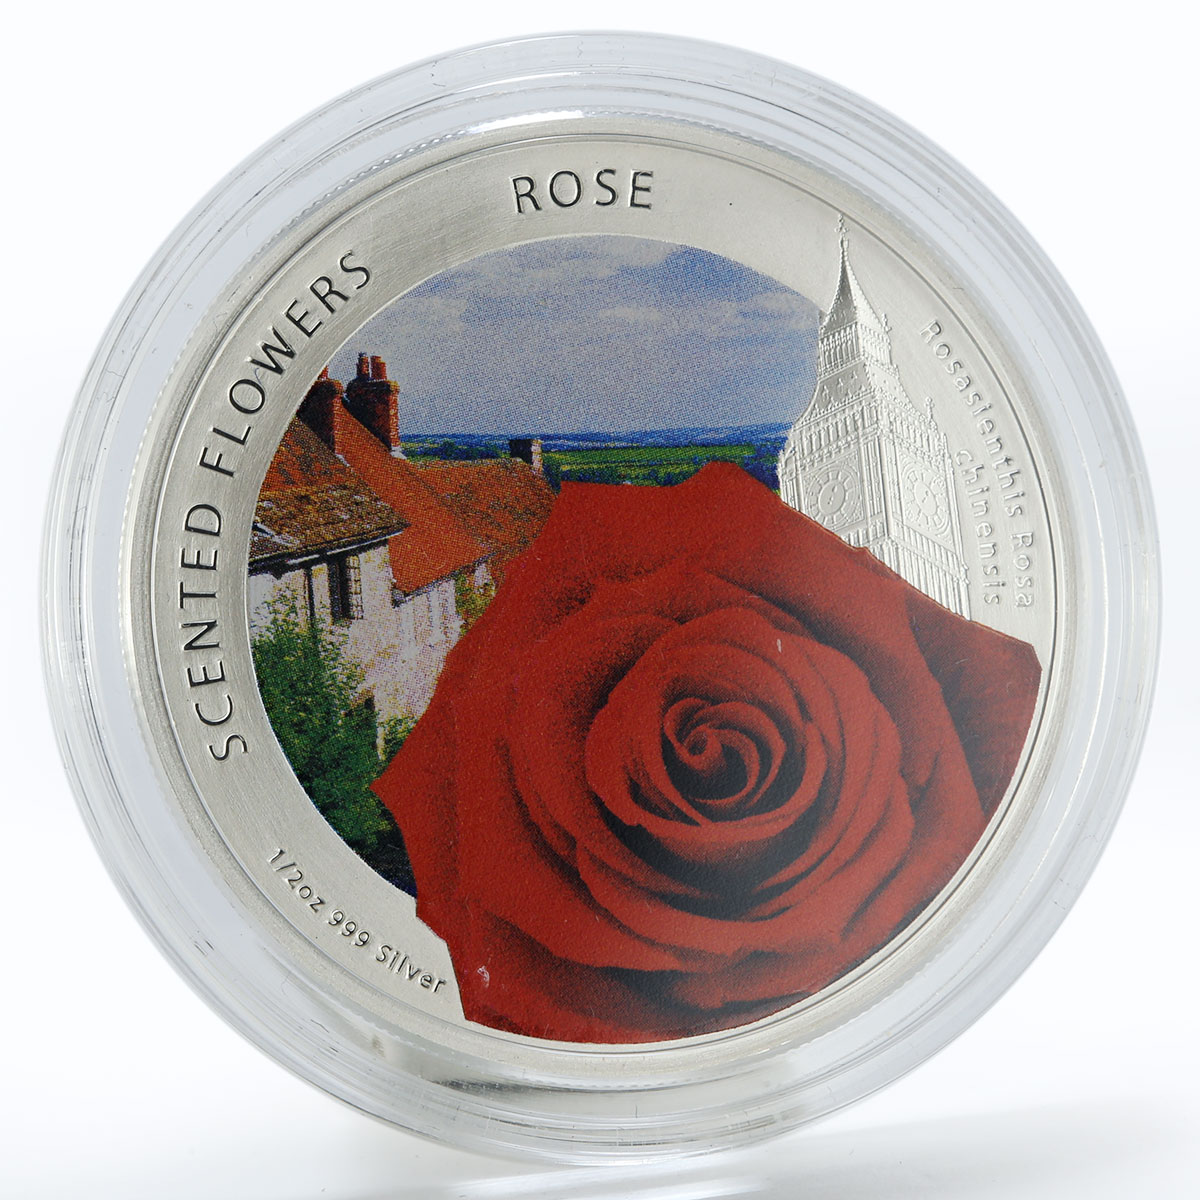 Niue 1 dollar Scented Flowers Rose colored silver coin 2013